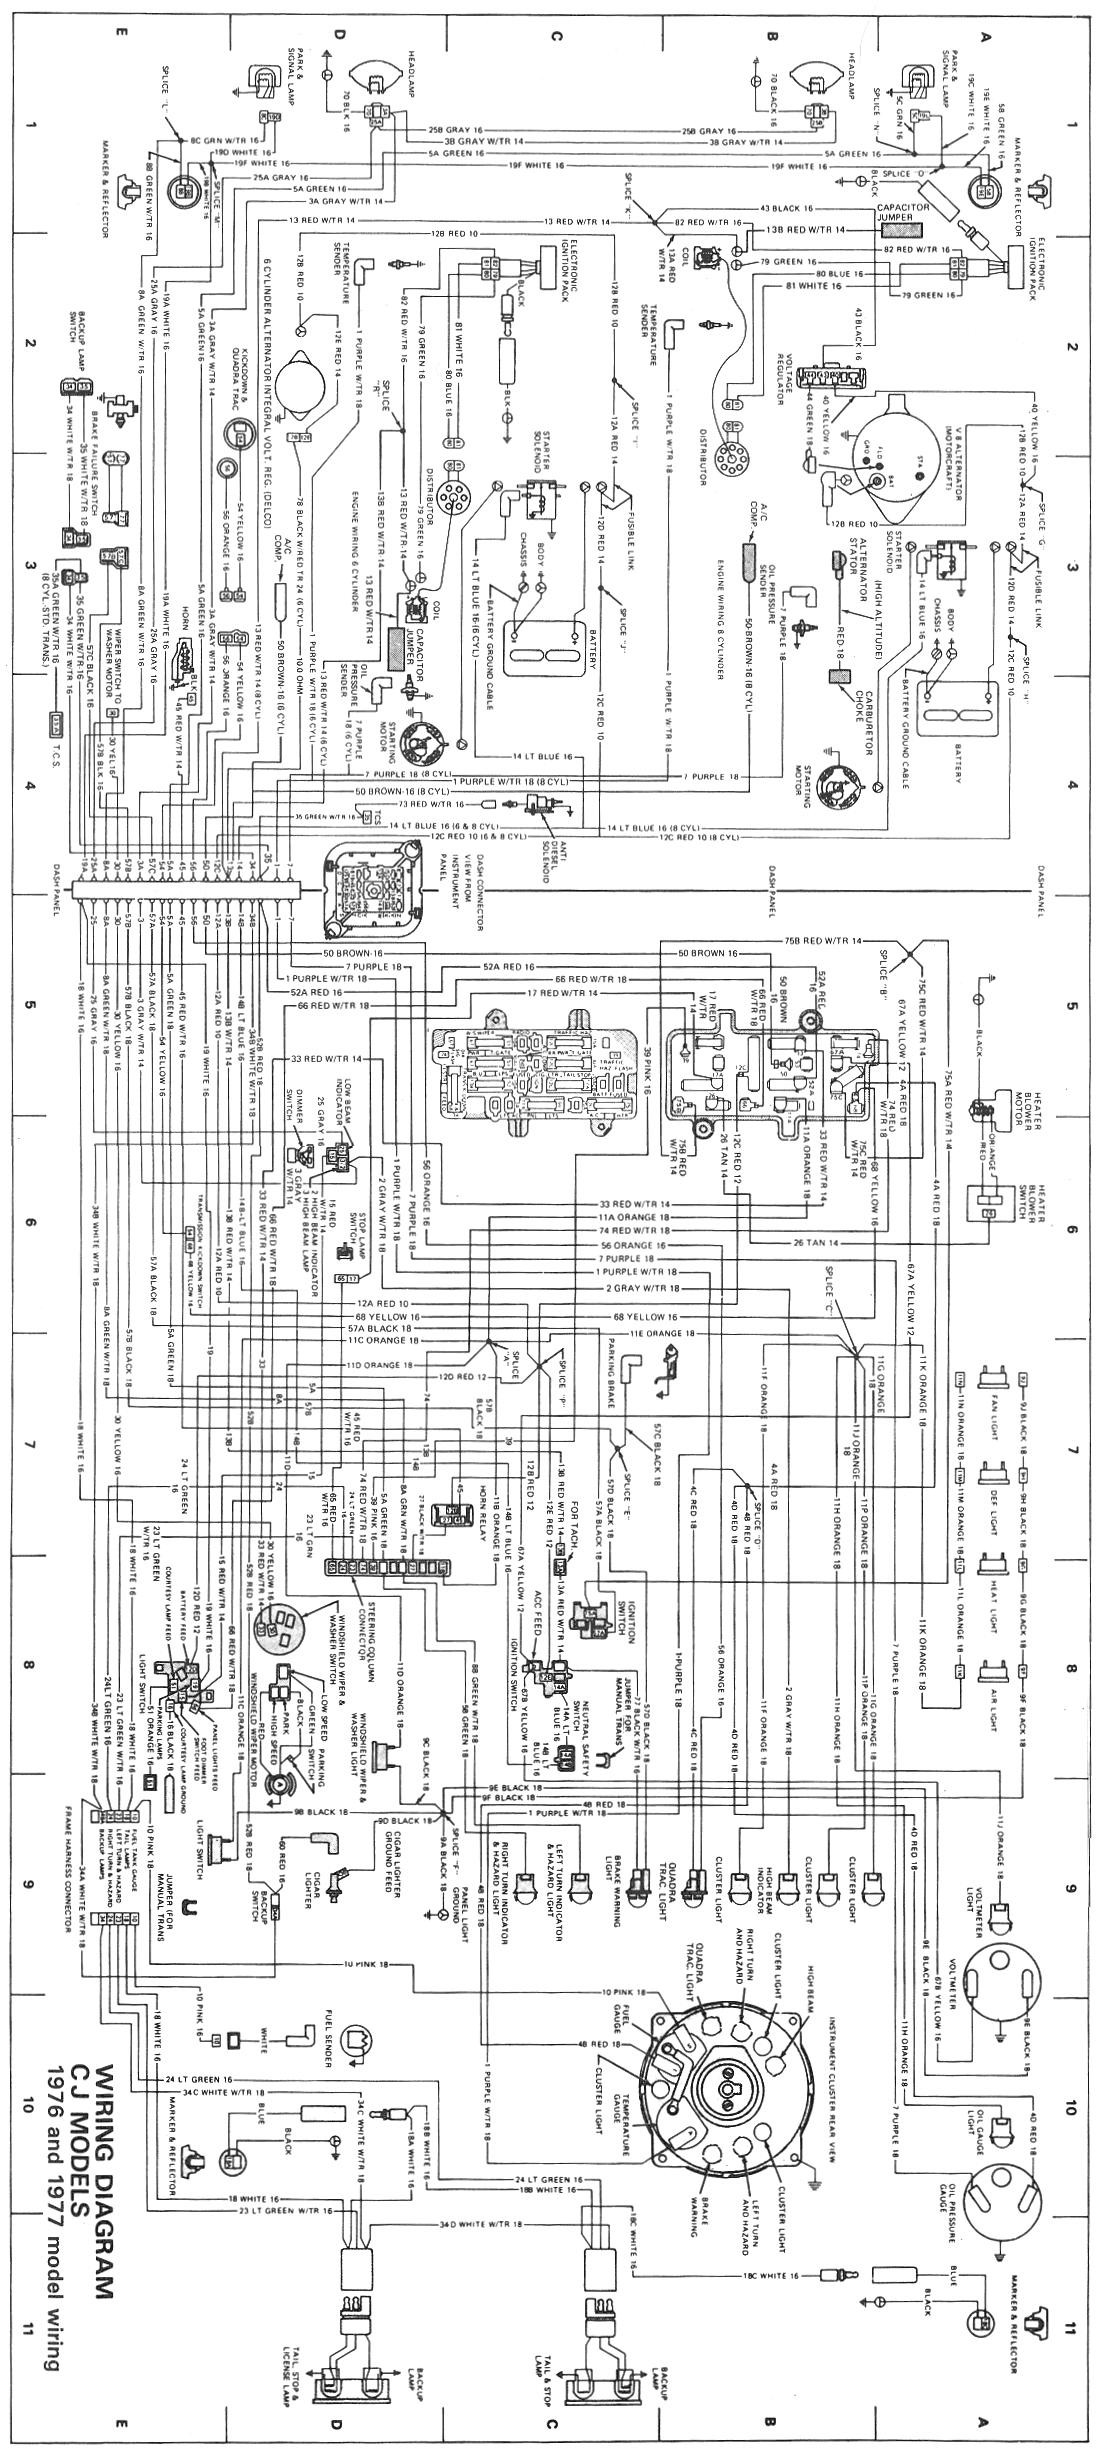 Jeep Cj5 Wiring Schematic - Wiring Diagram Data Jeep Comanche Electrical Wiring Schematic on